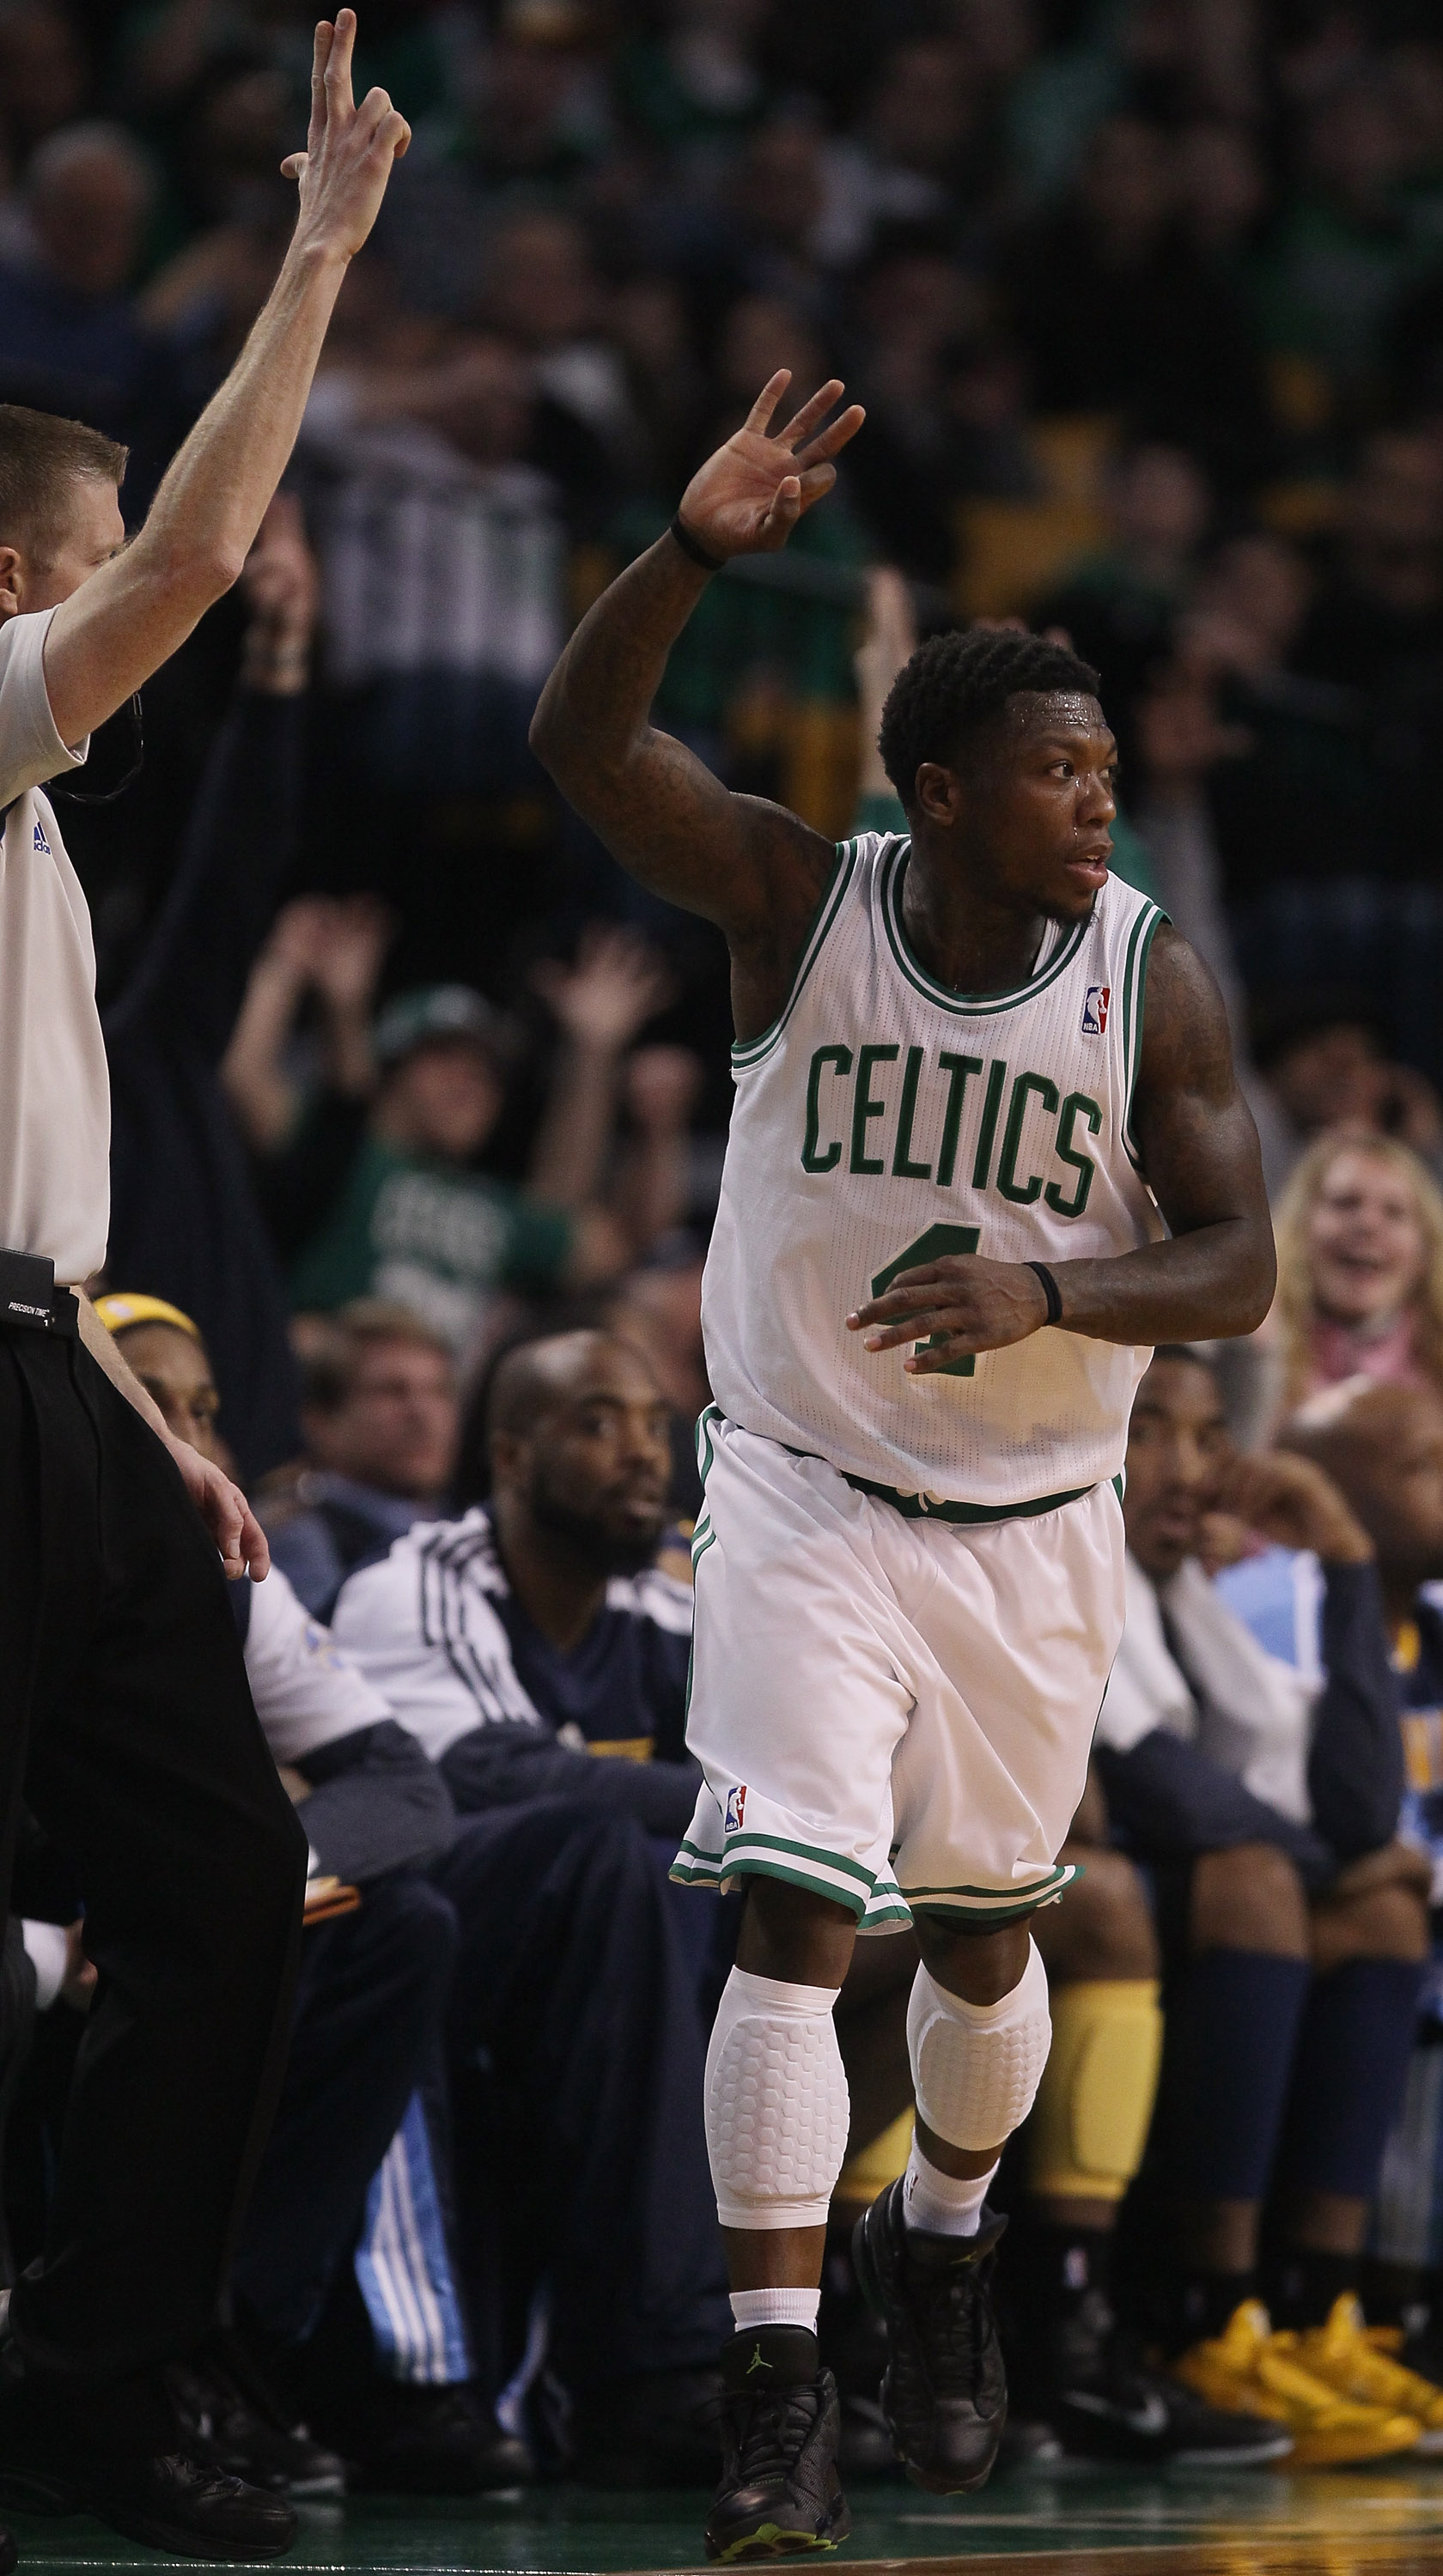 BOSTON, MA - DECEMBER 08:  Nate Robinson #4 of the Boston Celtics celebrates his three point basket in the second half against the Denver Nuggets on December 8, 2010 at the TD Garden in Boston, Massachusetts. The Celtics defeated the Nuggets 105-89. NOTE